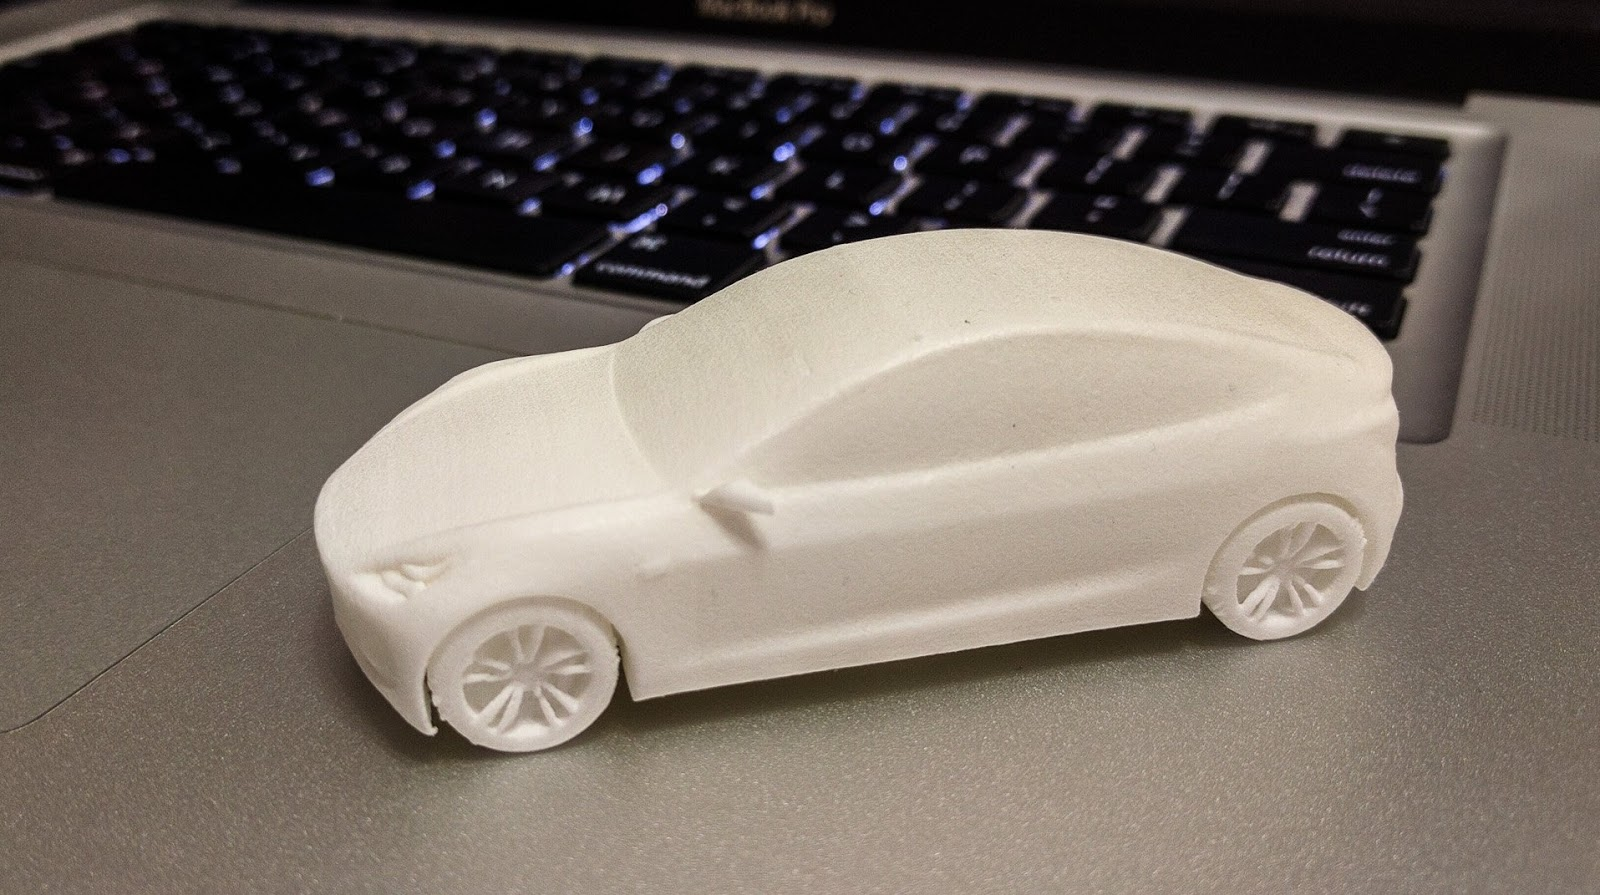 TESLA UPDATES: You can now purchase an unofficial 3D printed Model 3